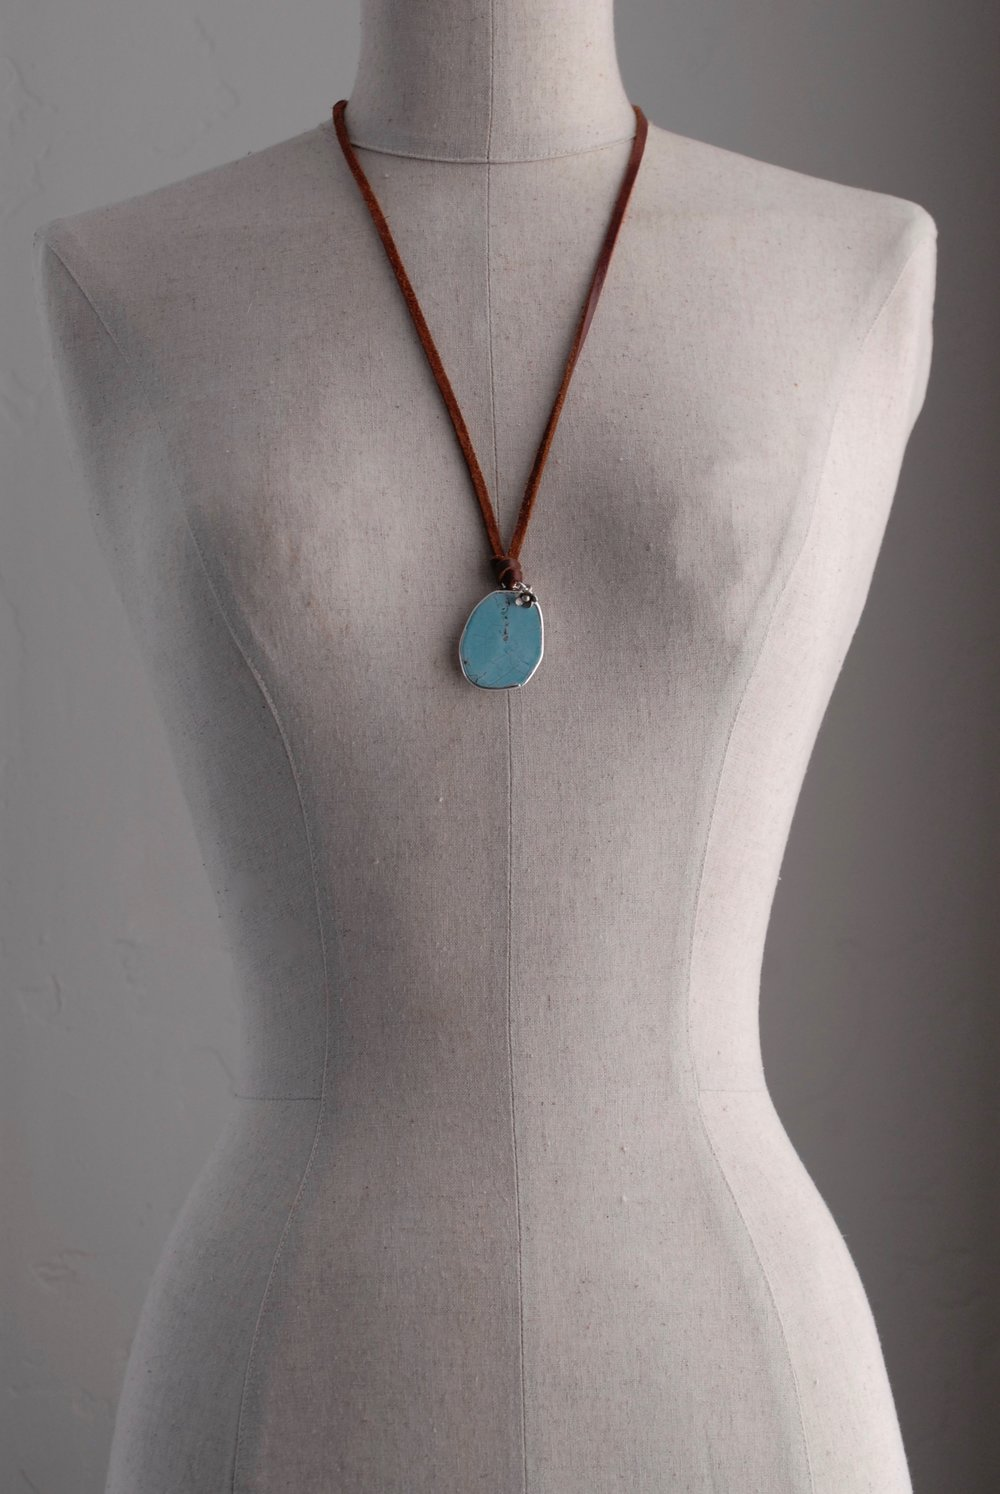 Faux Turquoise & Sterling with Flower Charm on Leather